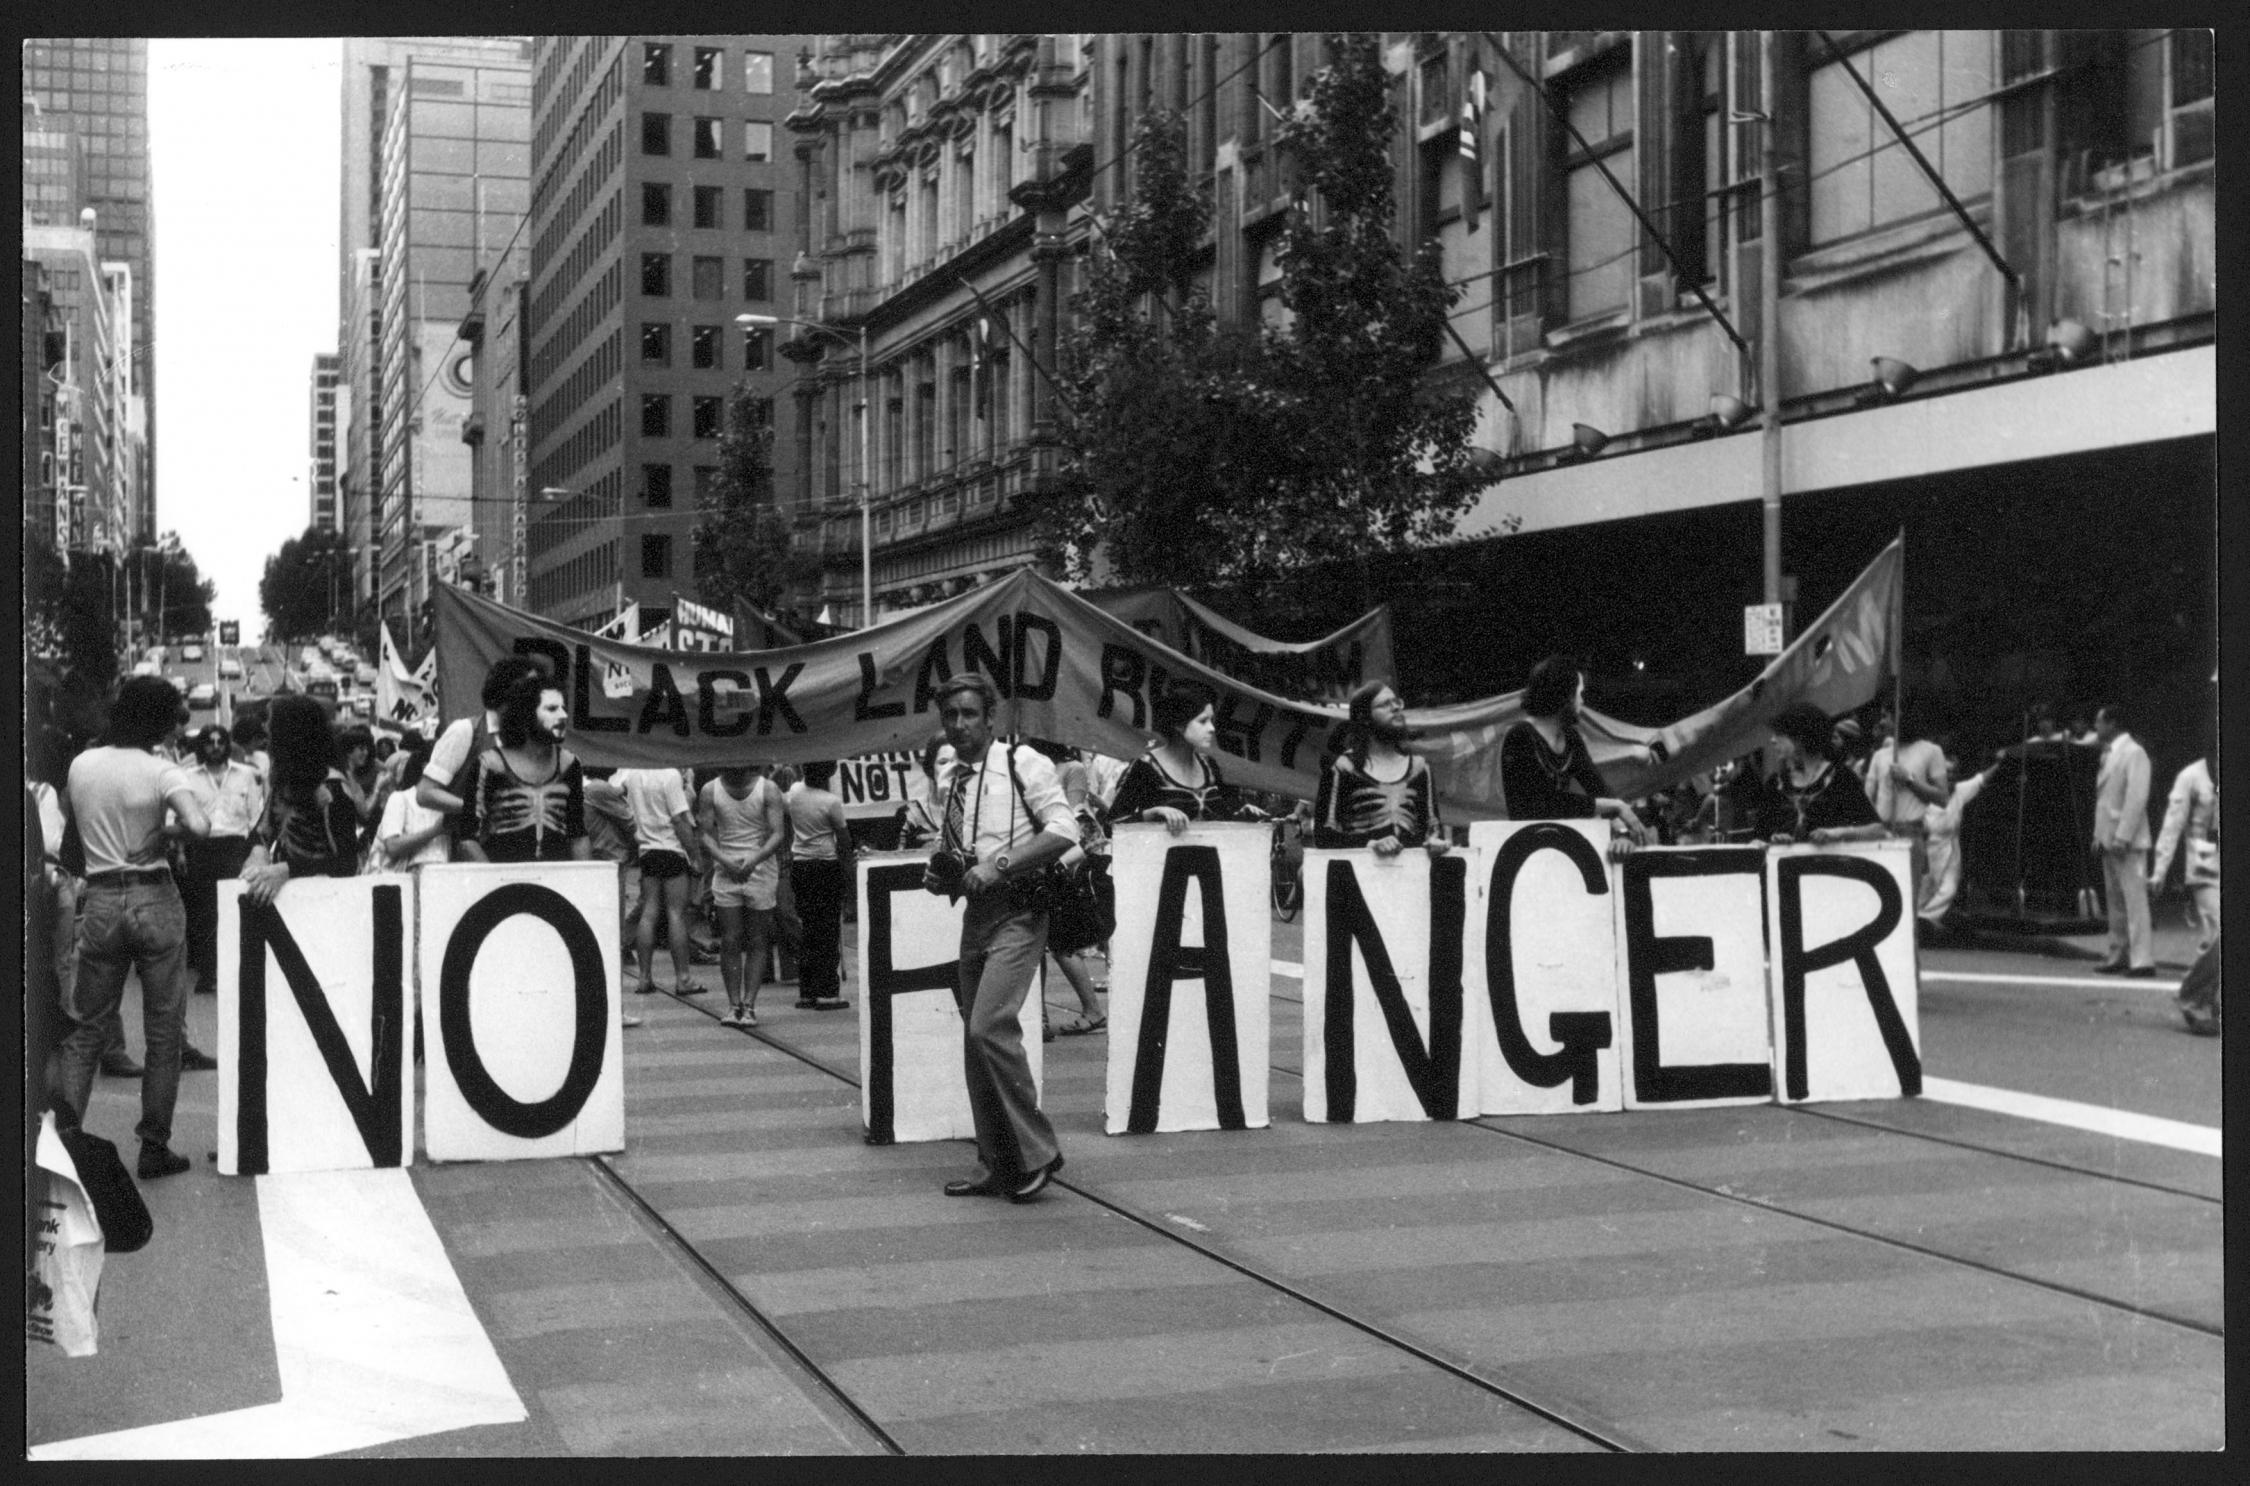 Street protest featuring a 'No Ranger' sign.